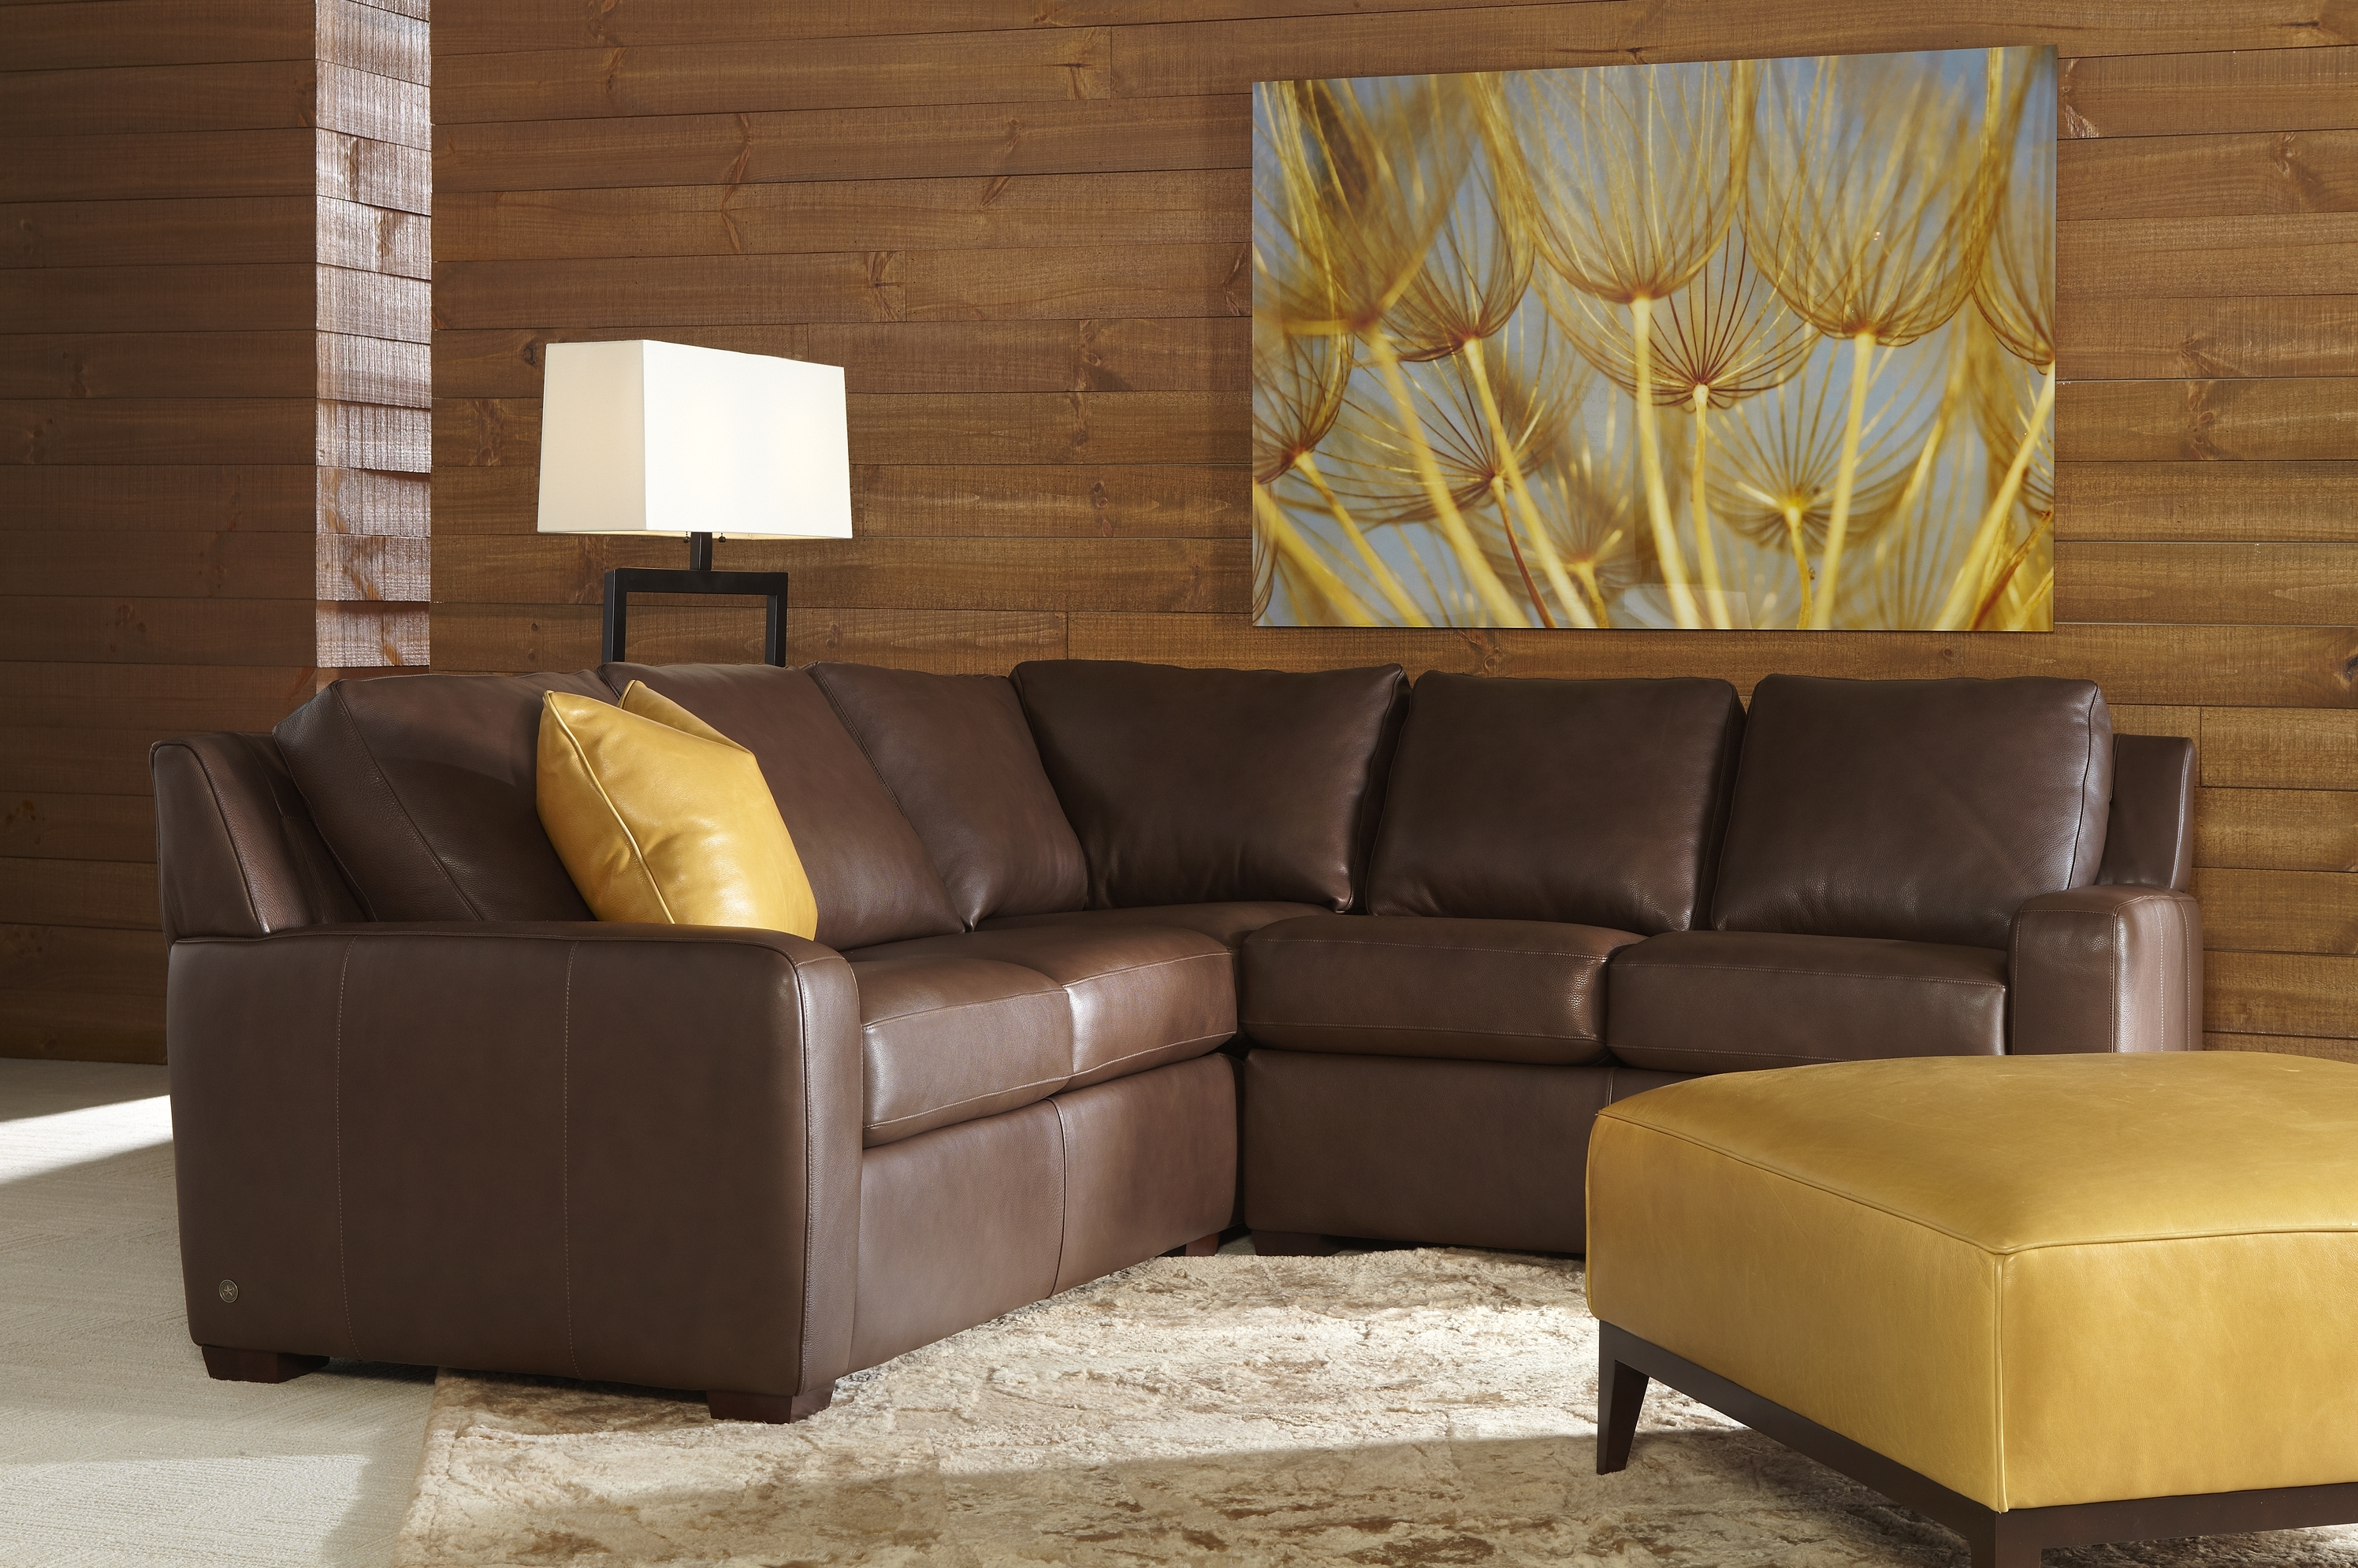 Made In Usa Sectional Sofas Intended For Well Known Sectional Sofas – Elegance And Style Tailored Just For Youand (View 4 of 20)